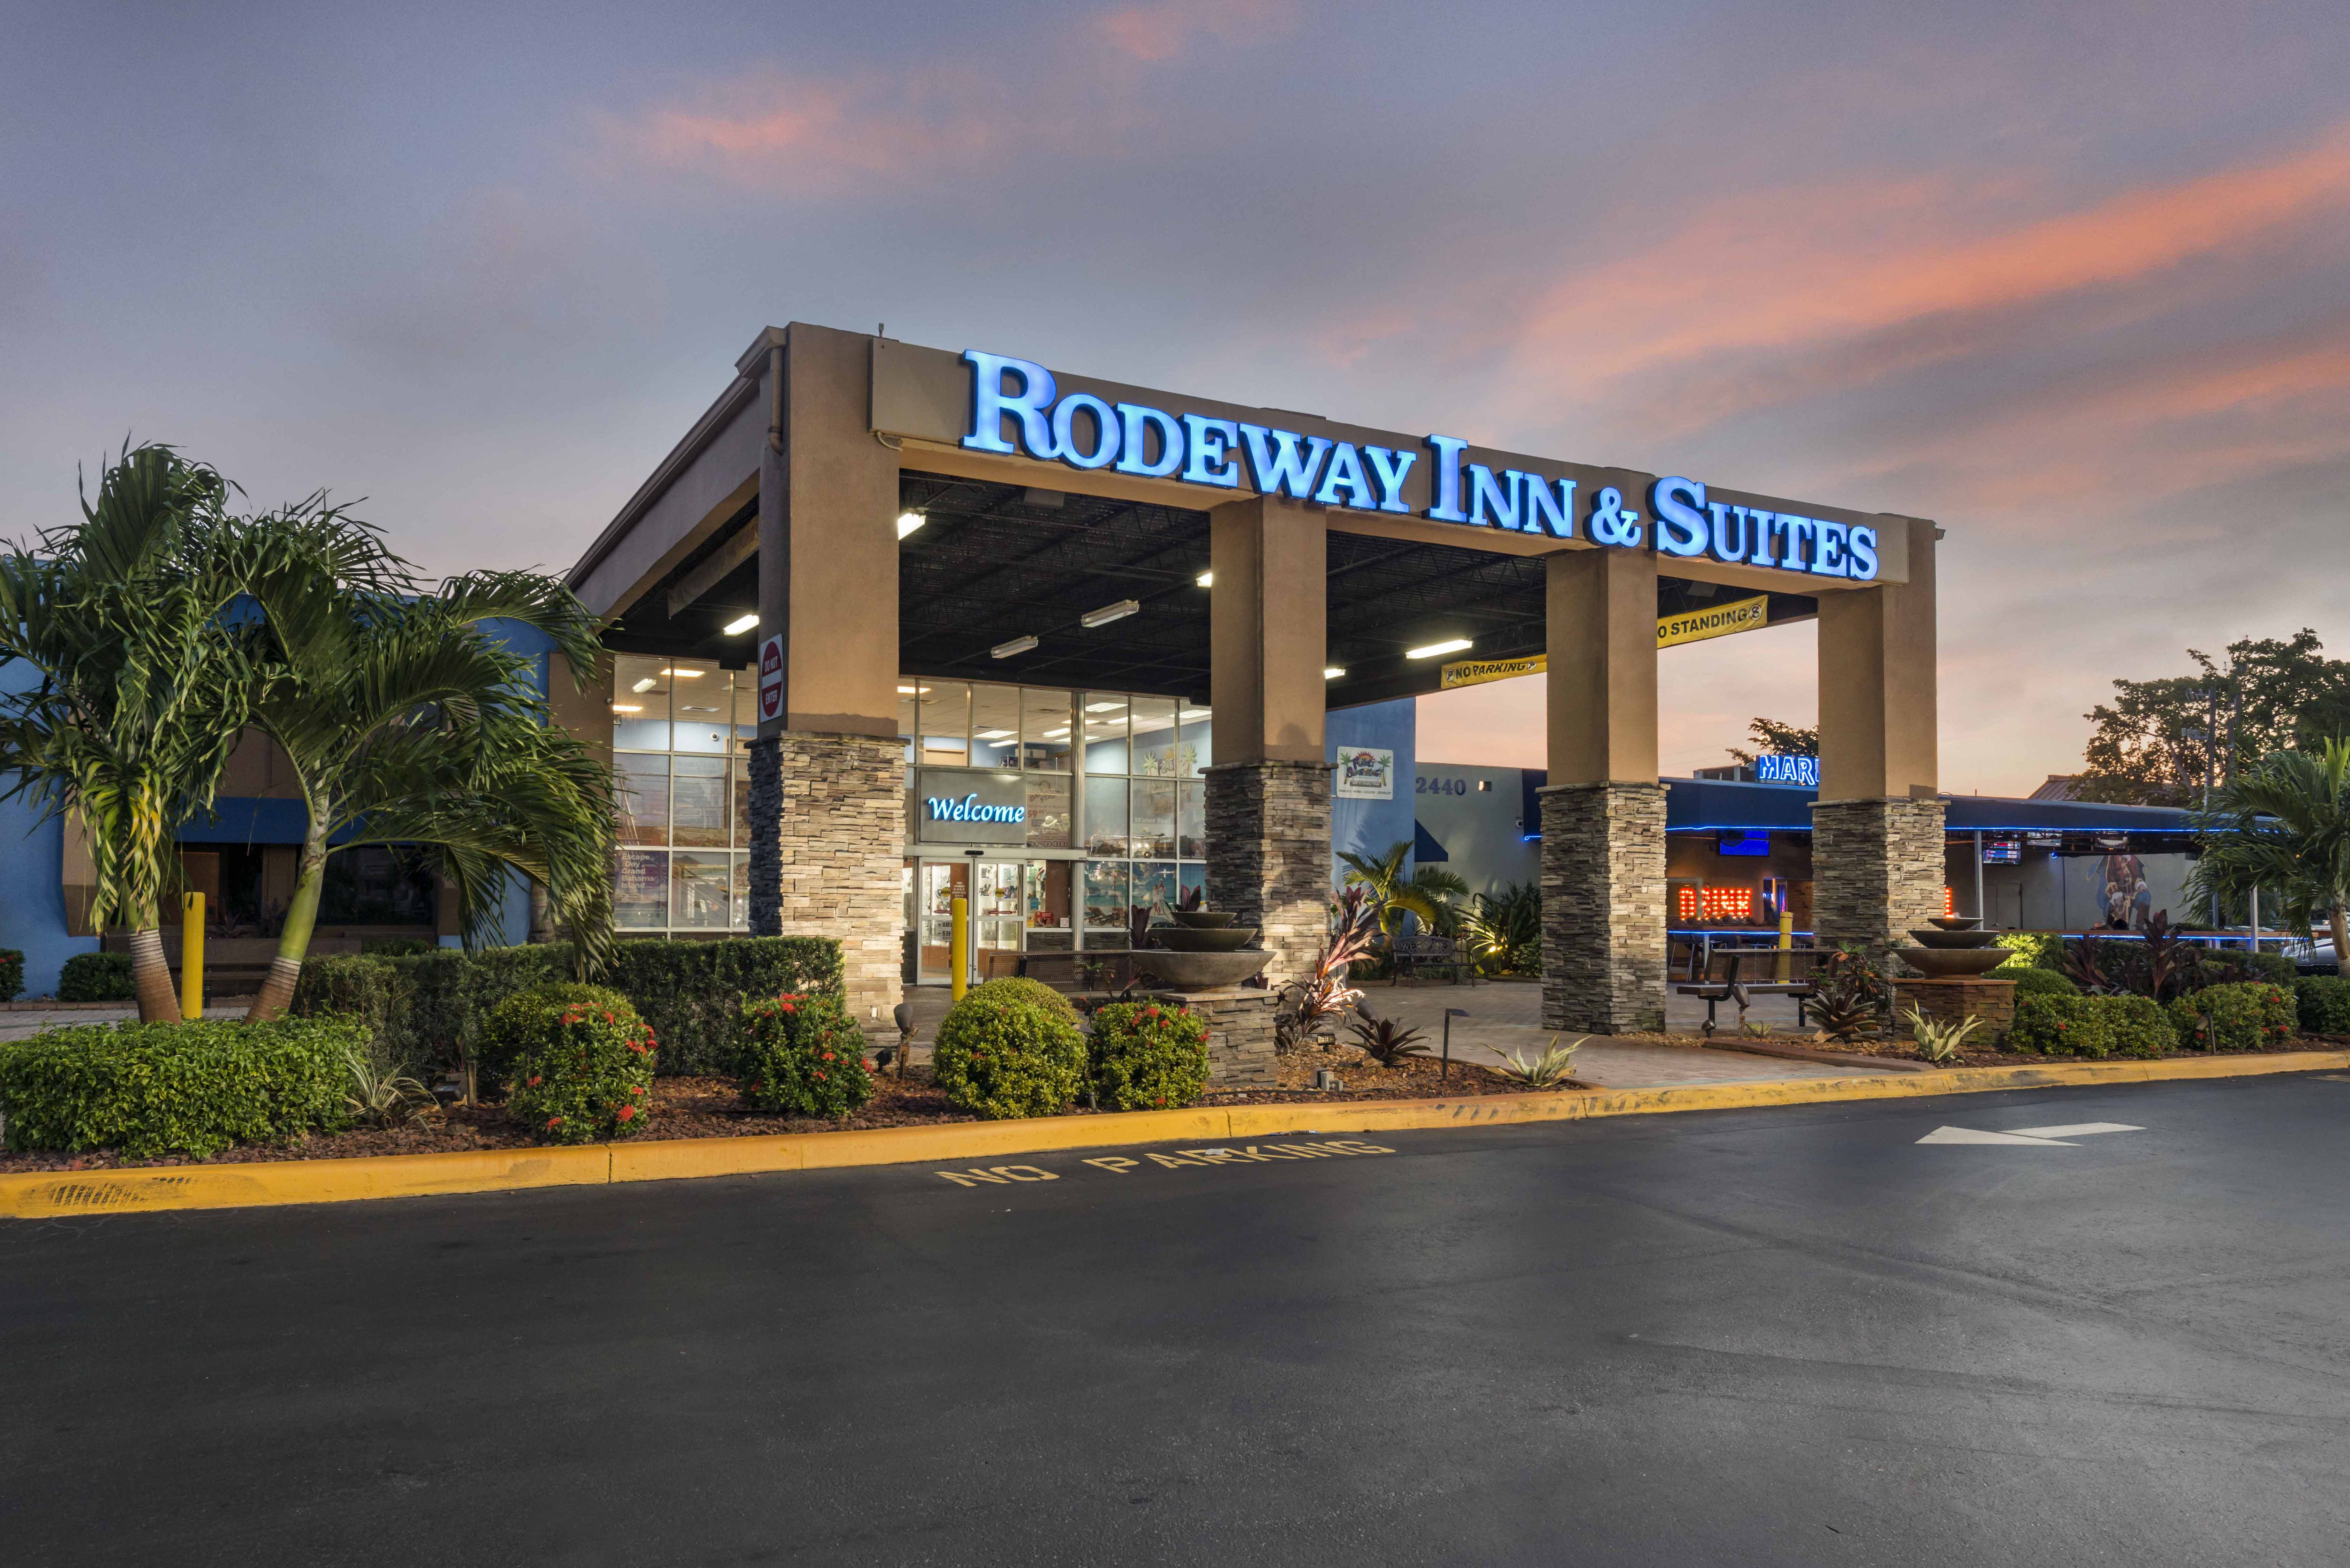 Rodeway Inn Suites - Fort Lauderdale Airport Cruise Port Hotel Completes Renovations for Cruise Season